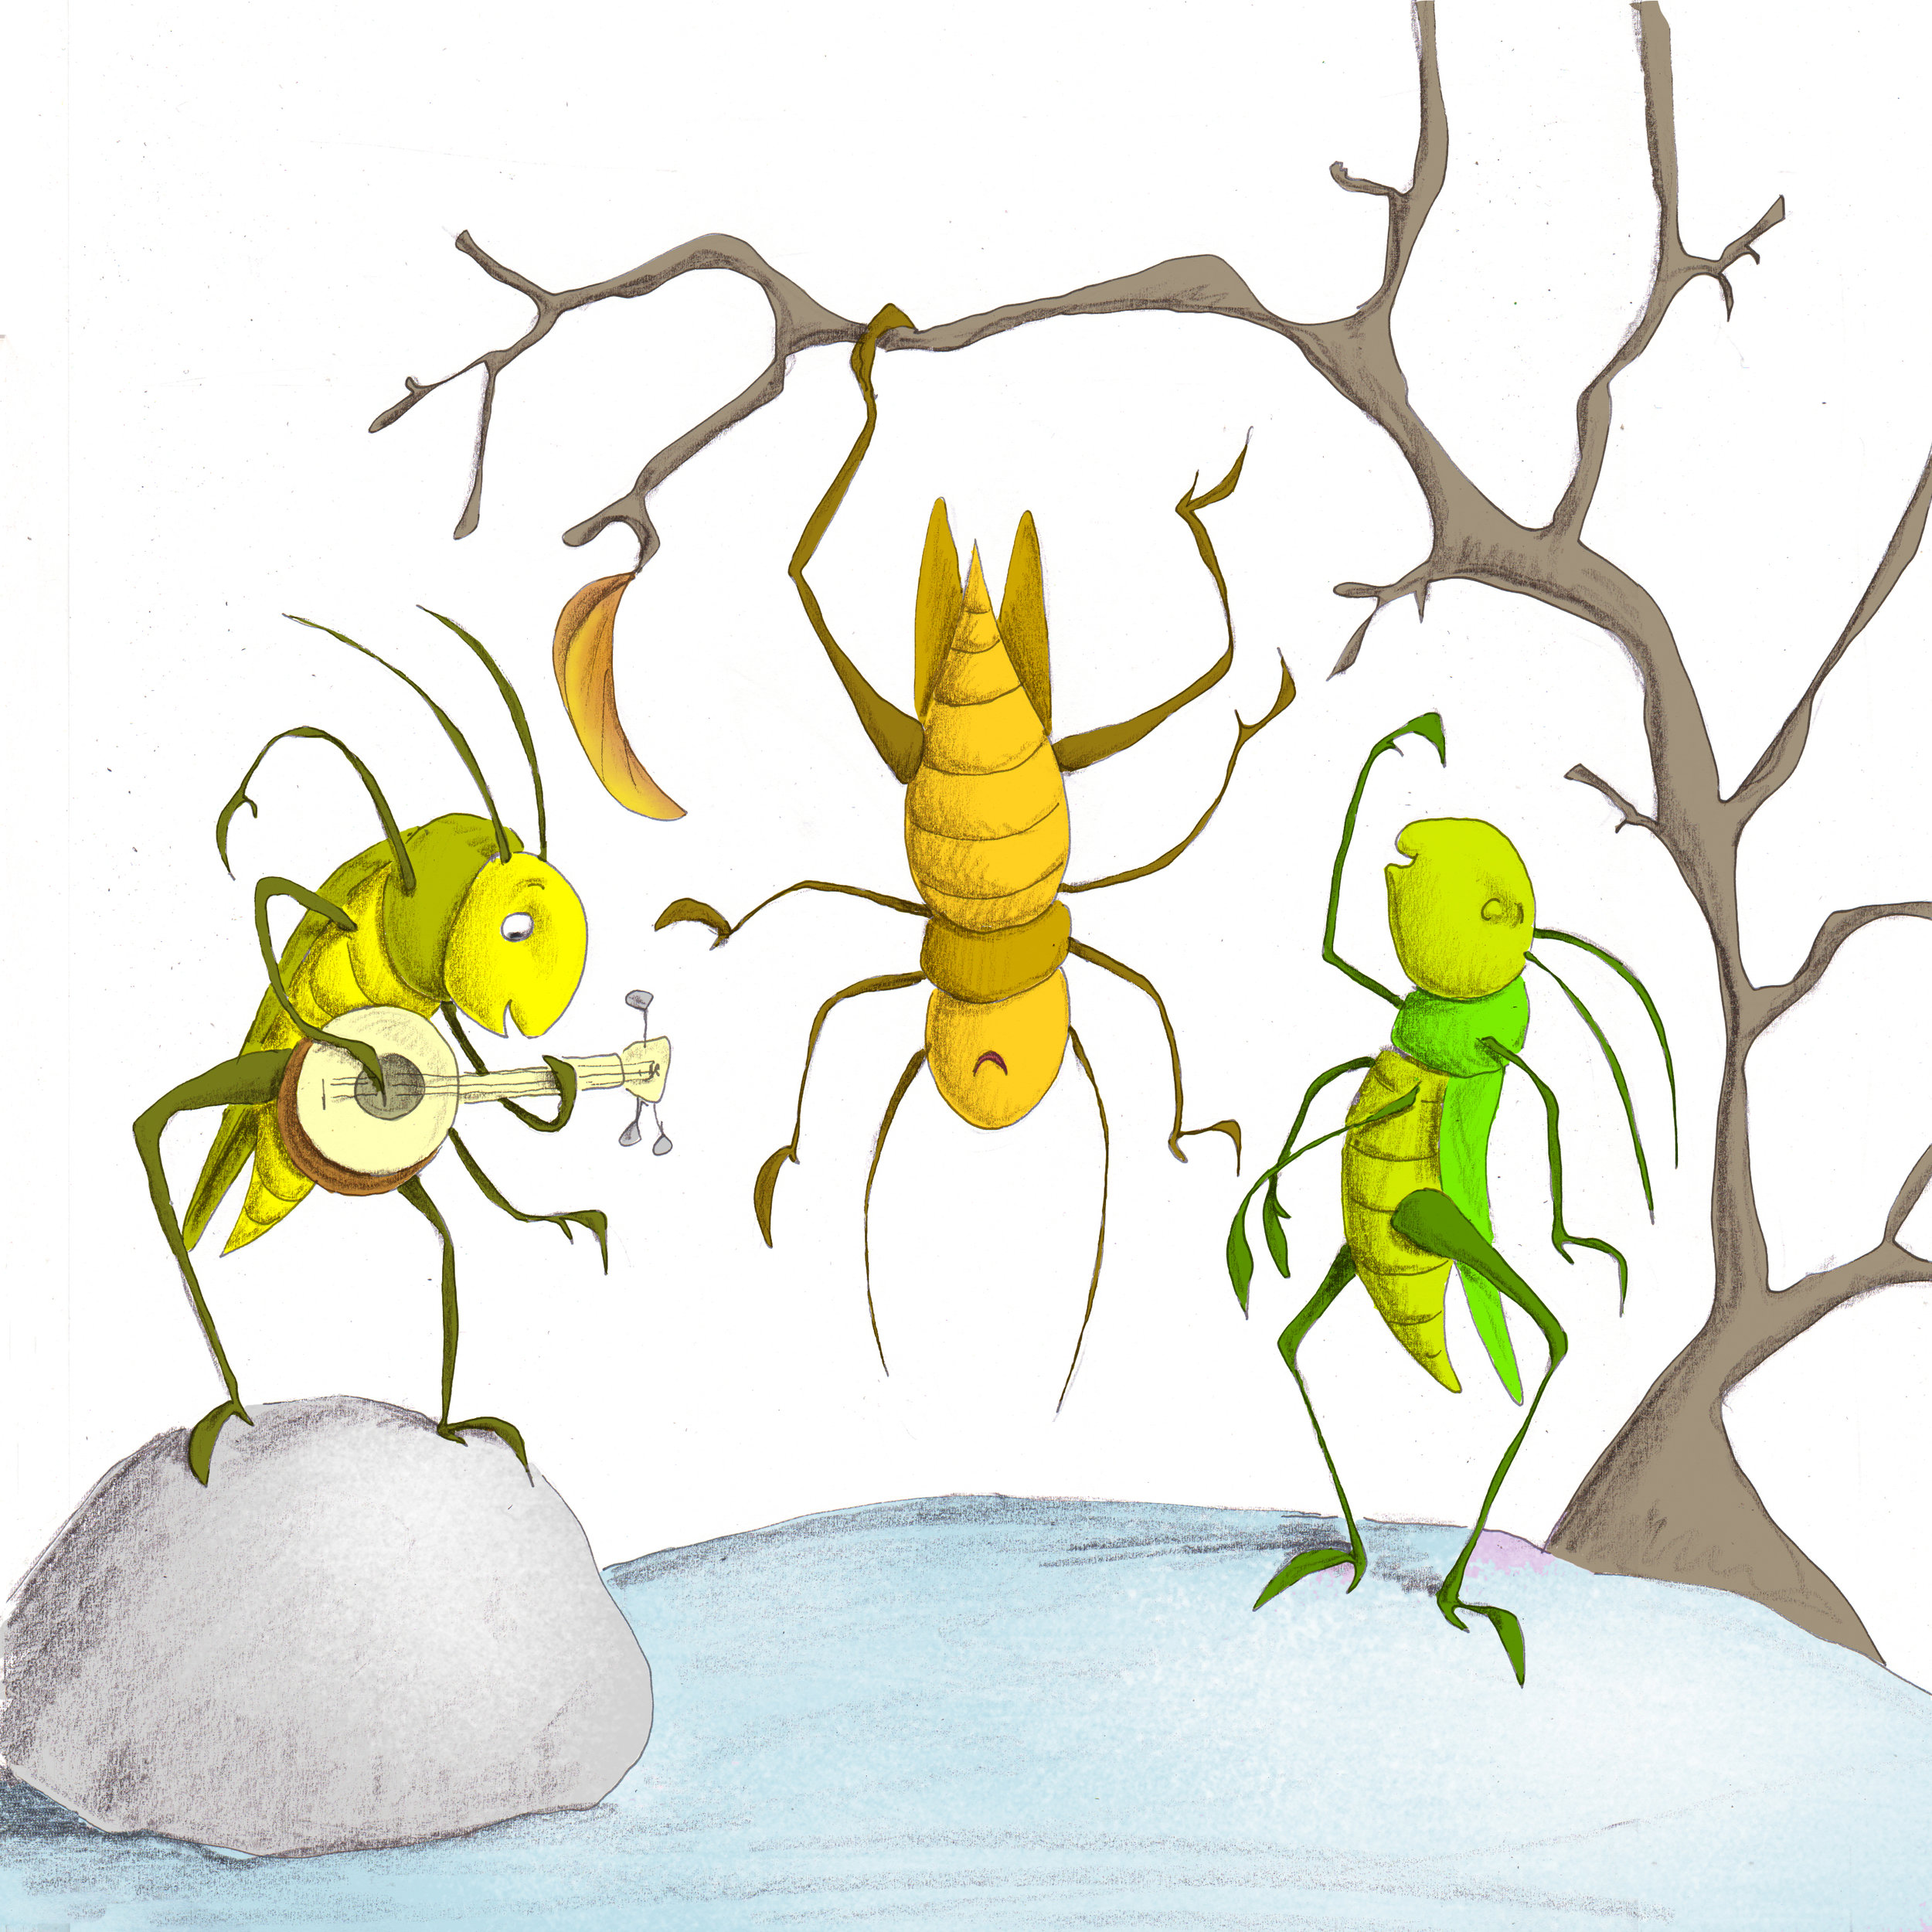 Download image from Little Ant and the Grasshopper.